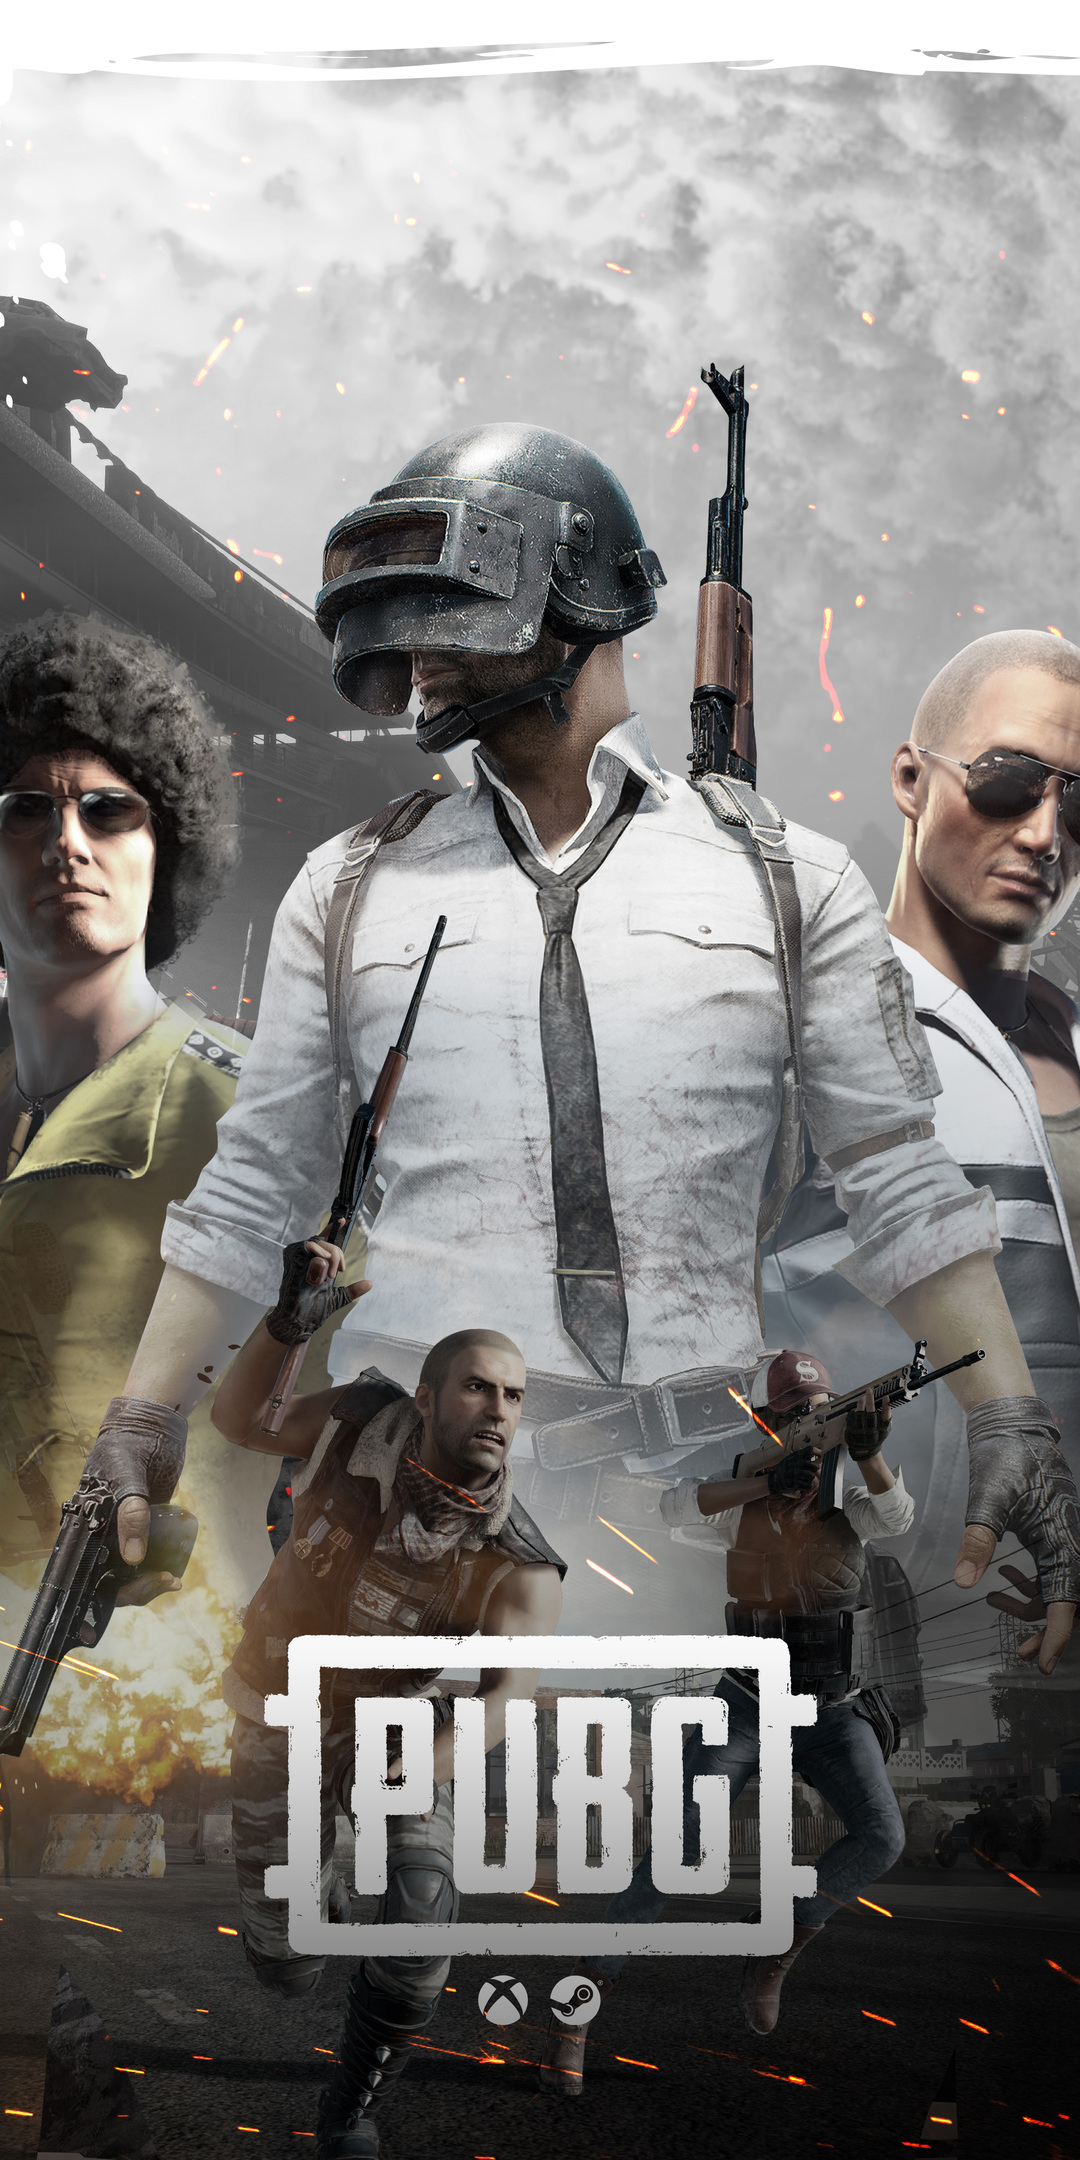 1080x2160 Pubg Game Poster Art 4k One Plus 5t Honor 7x Honor View 10